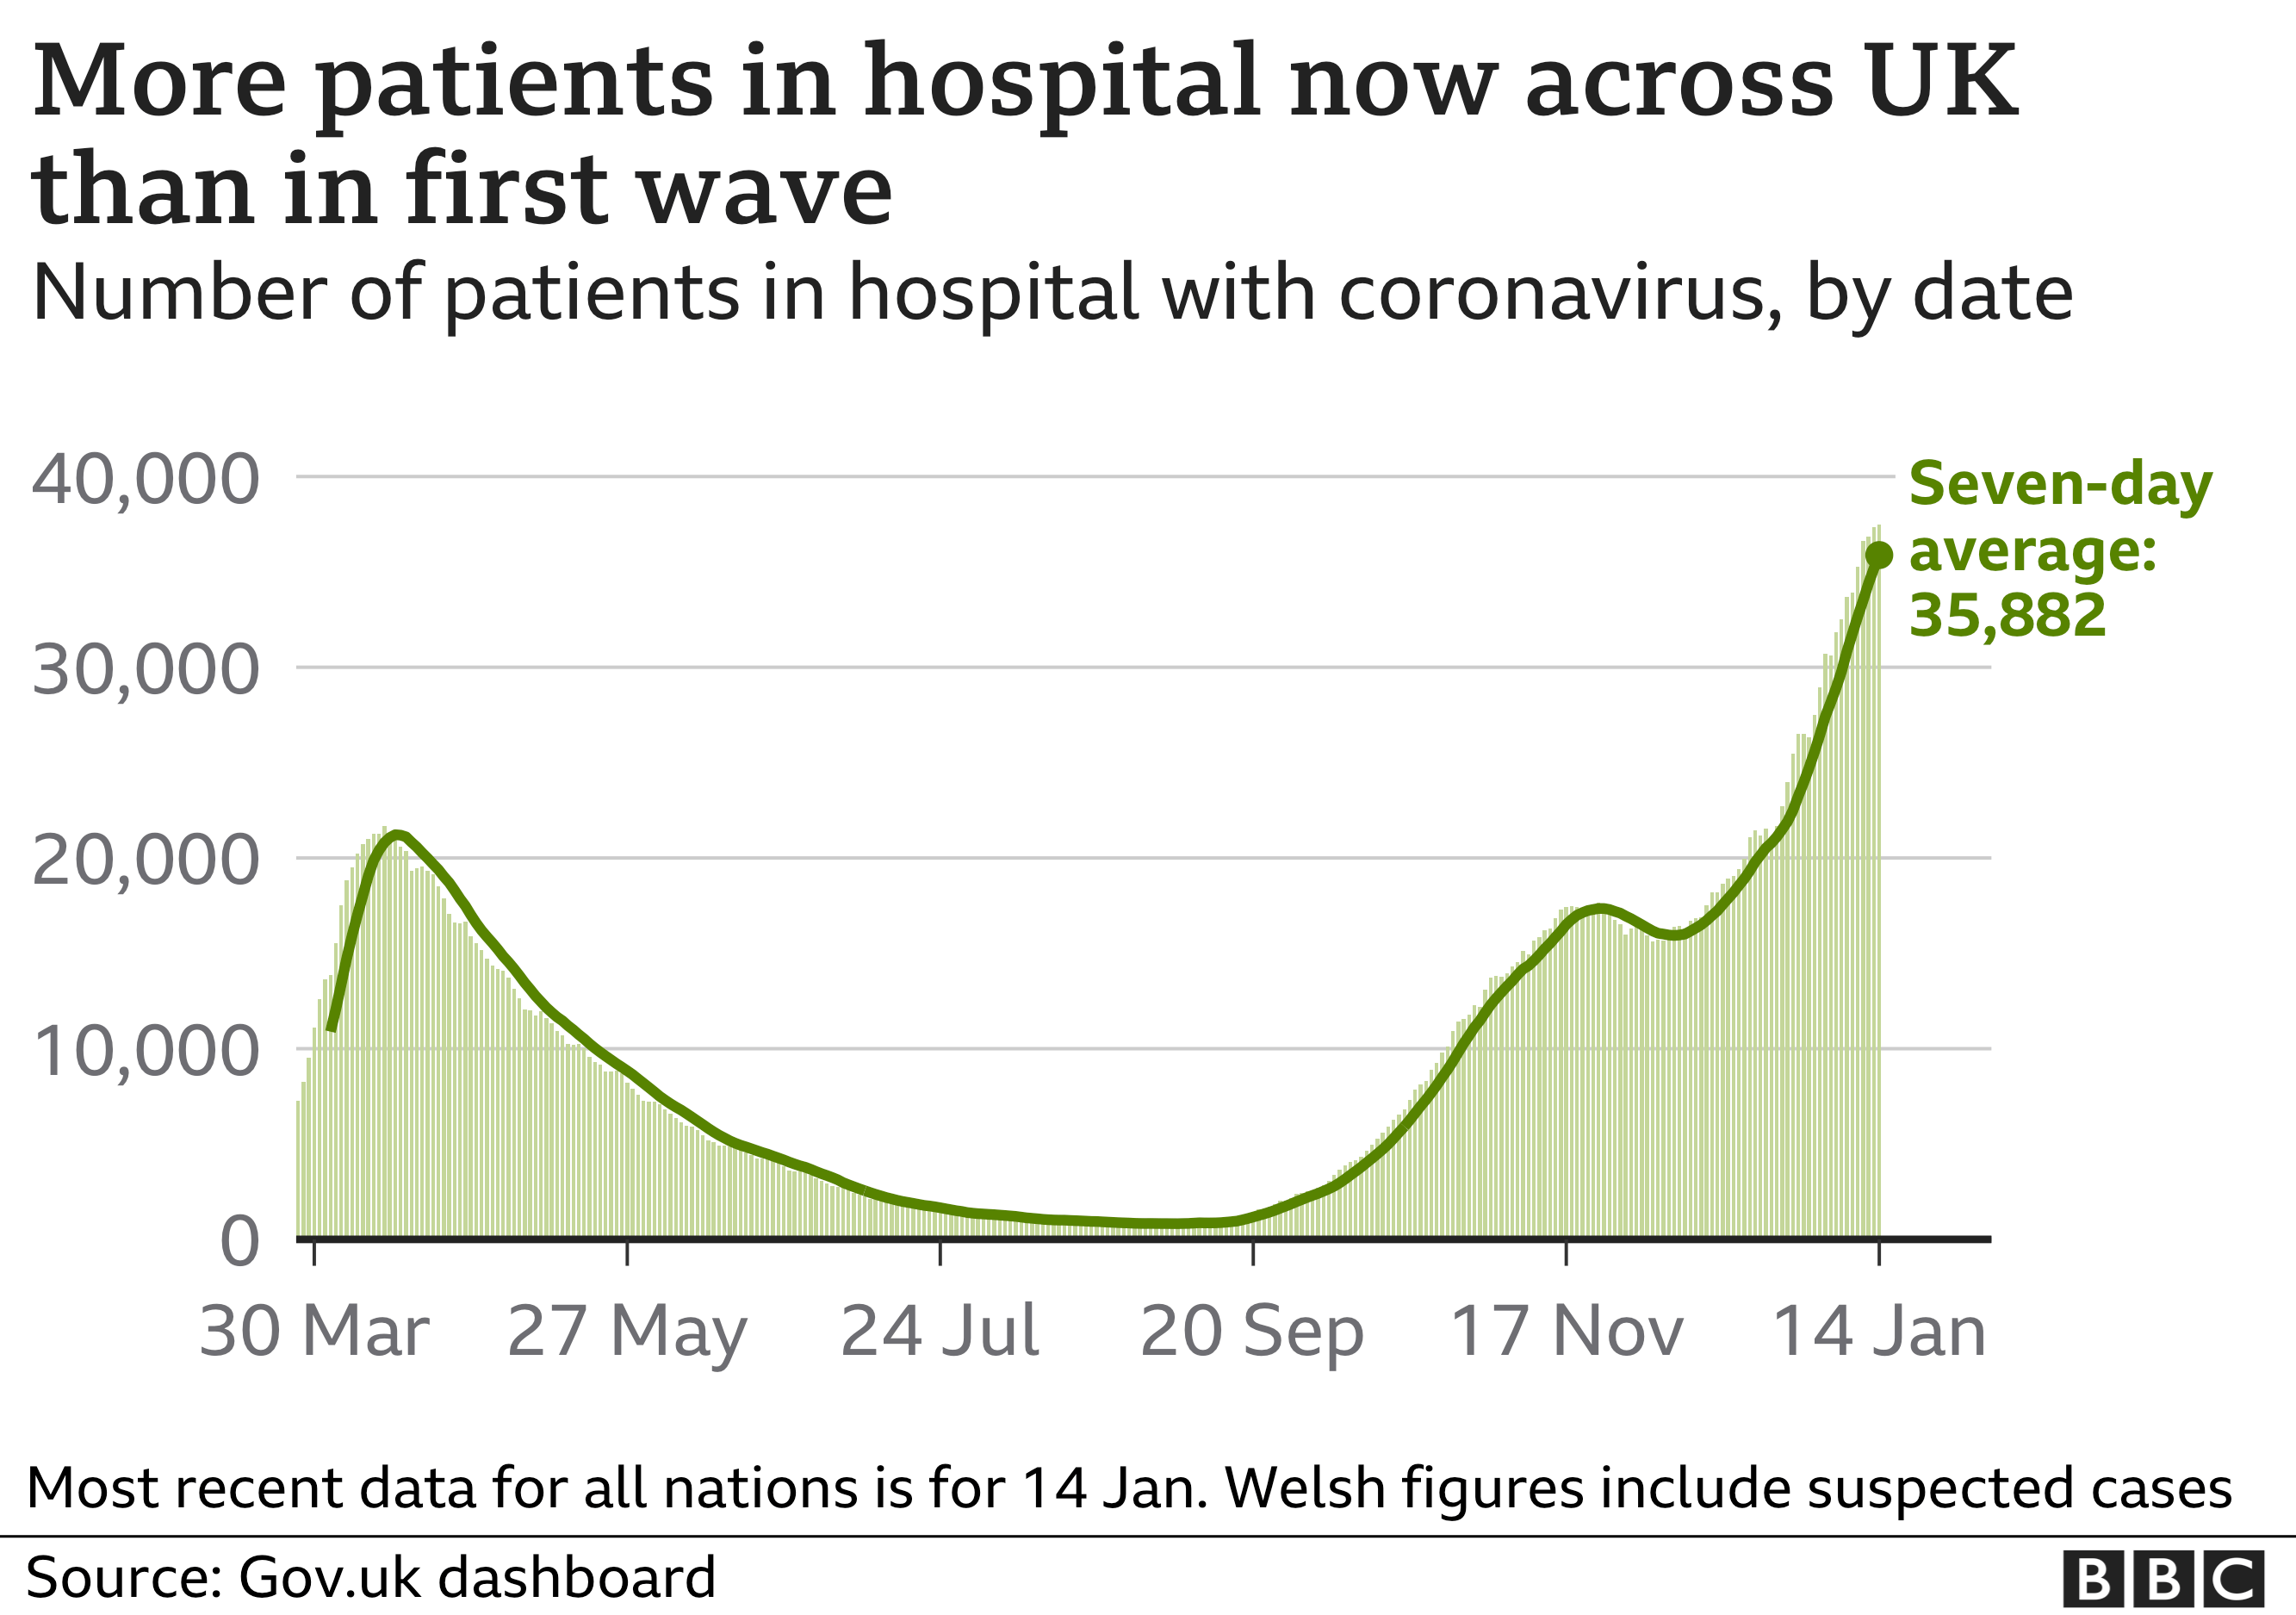 Chart showing the number of coronavirus patients in hospital in the UK. Updated 18 Jan.